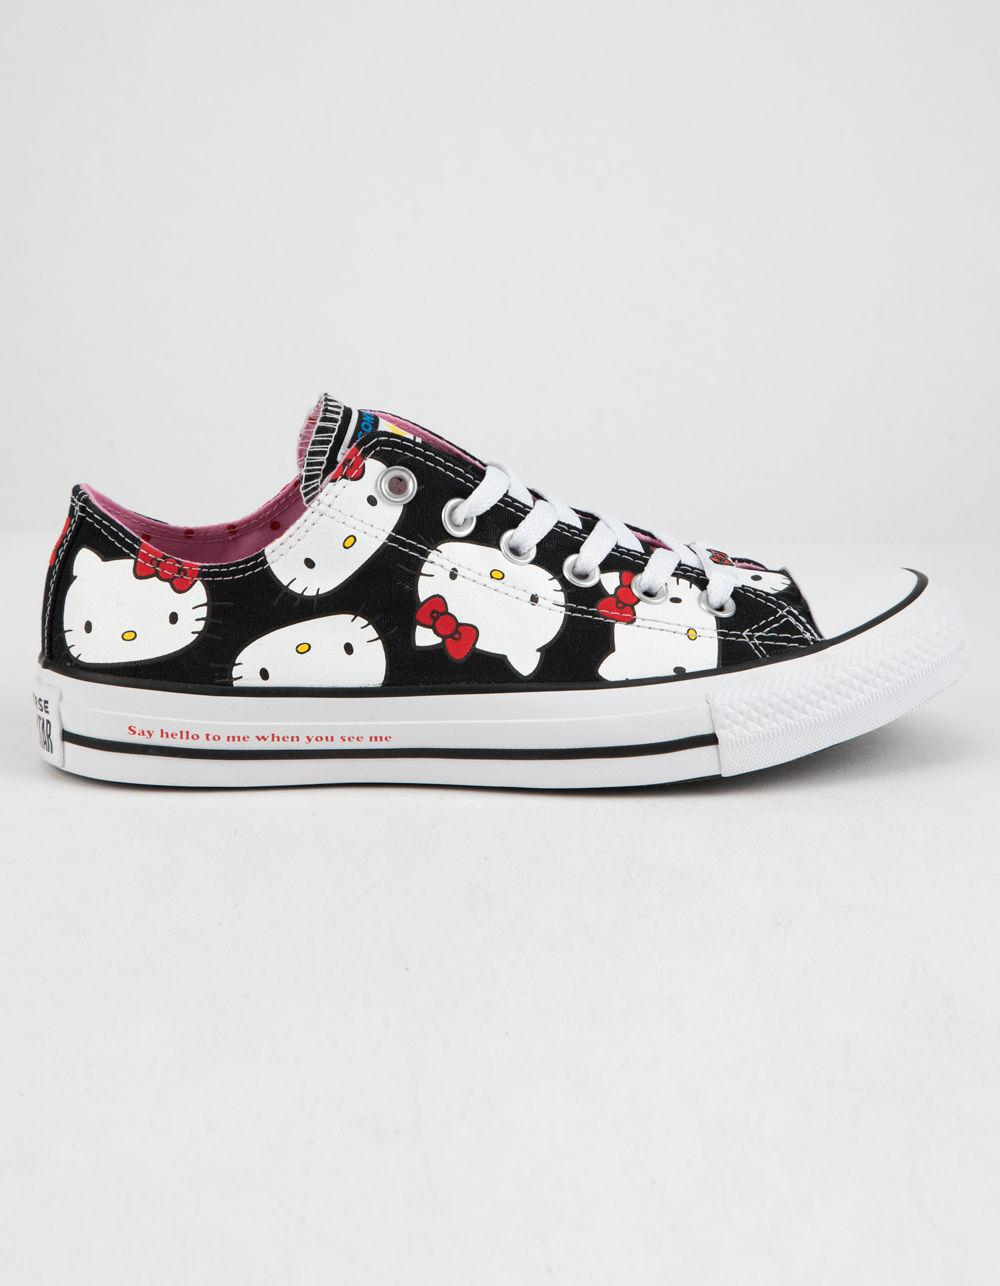 5d4f28179ae074 Converse. X Hello Kitty Chuck Taylor All Star Black   Prism Pink Low Top ...